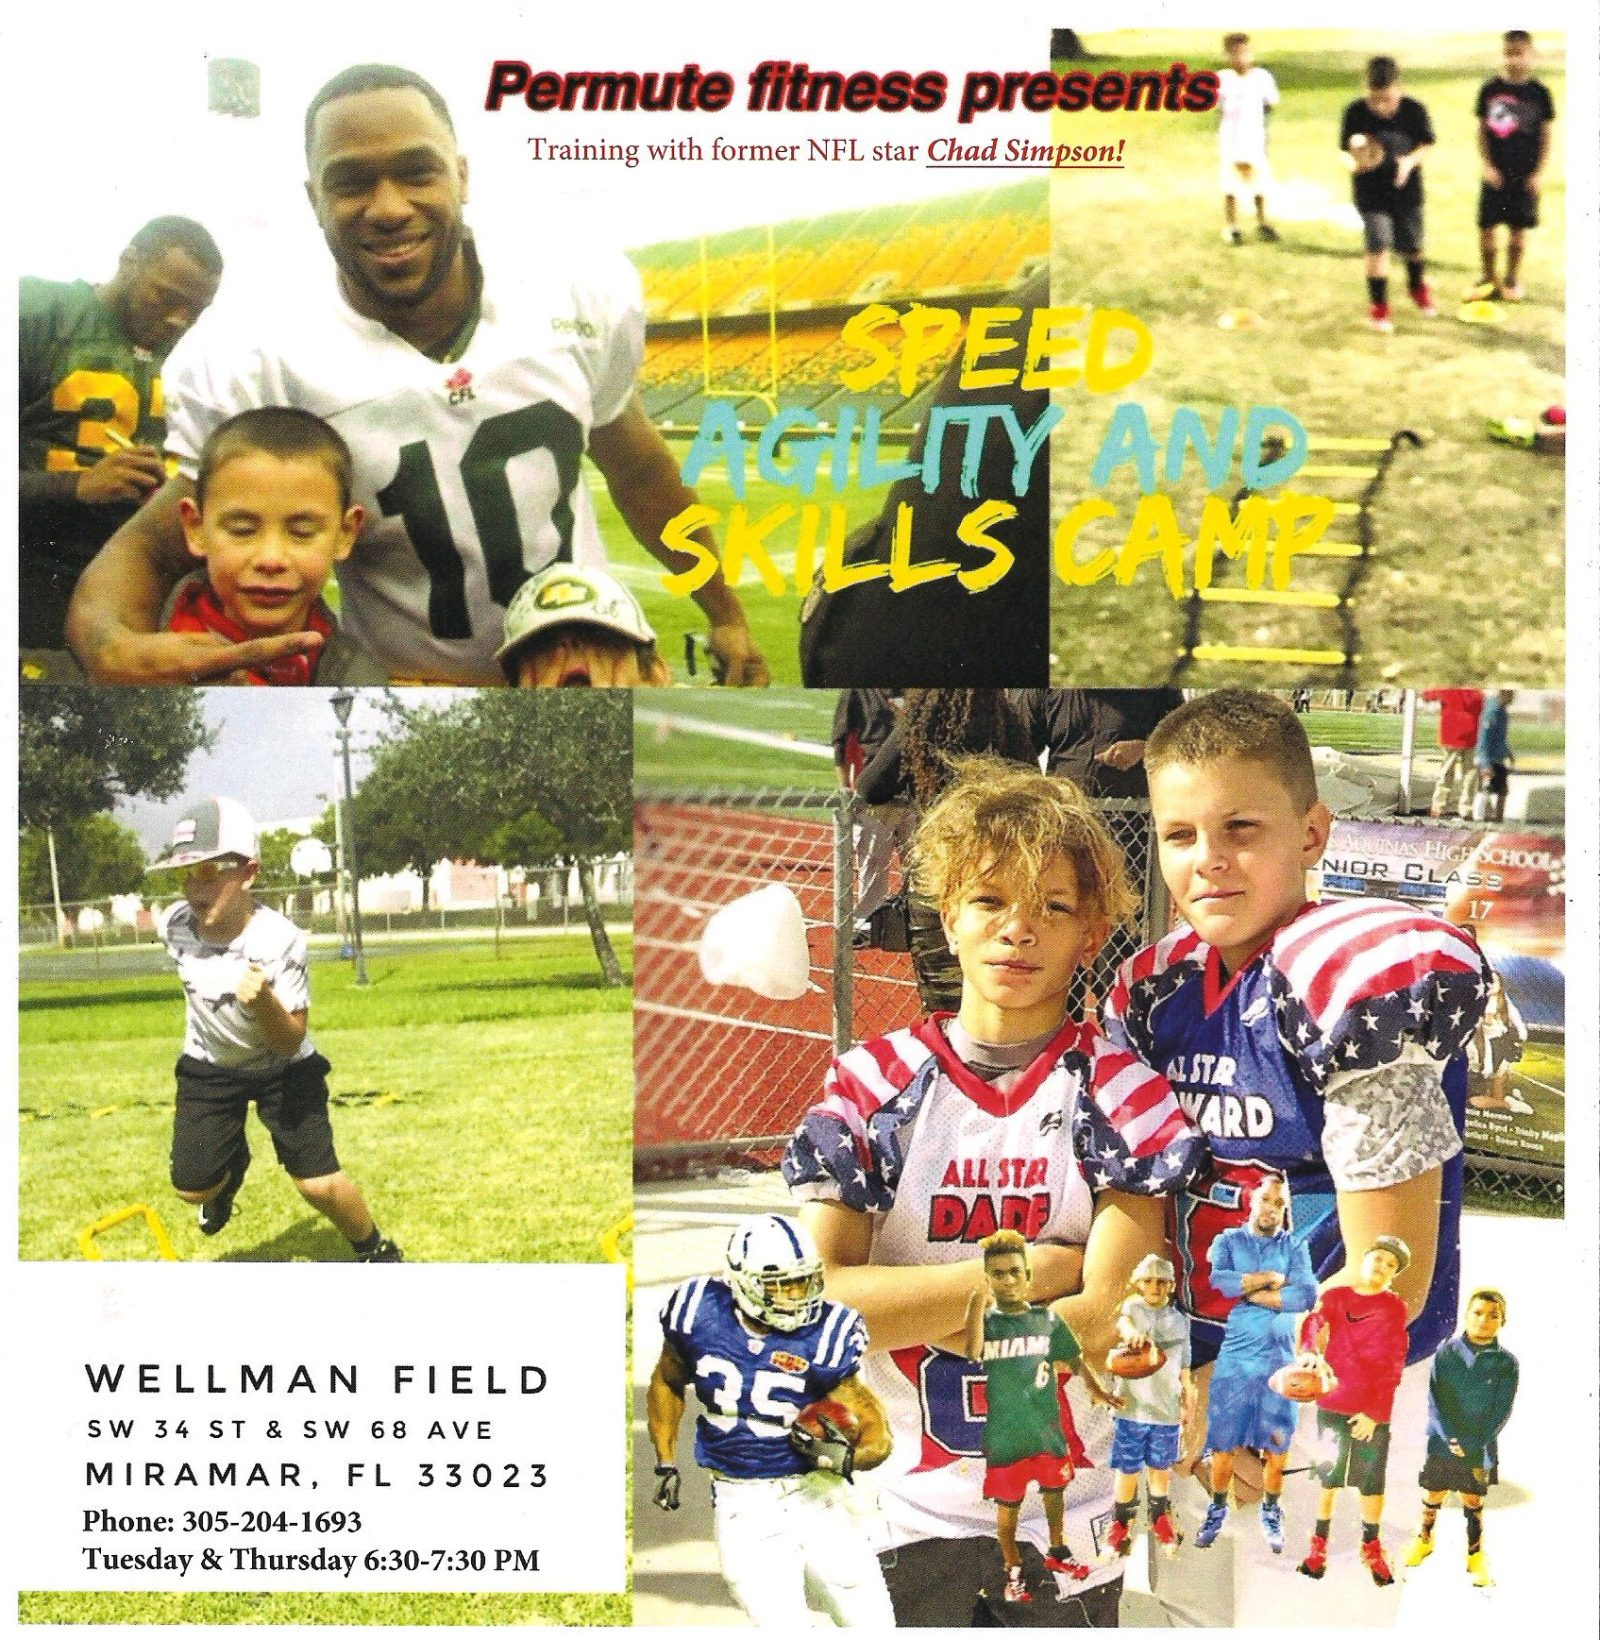 After School Programs Available with Former NFL Star Chad Simpson.